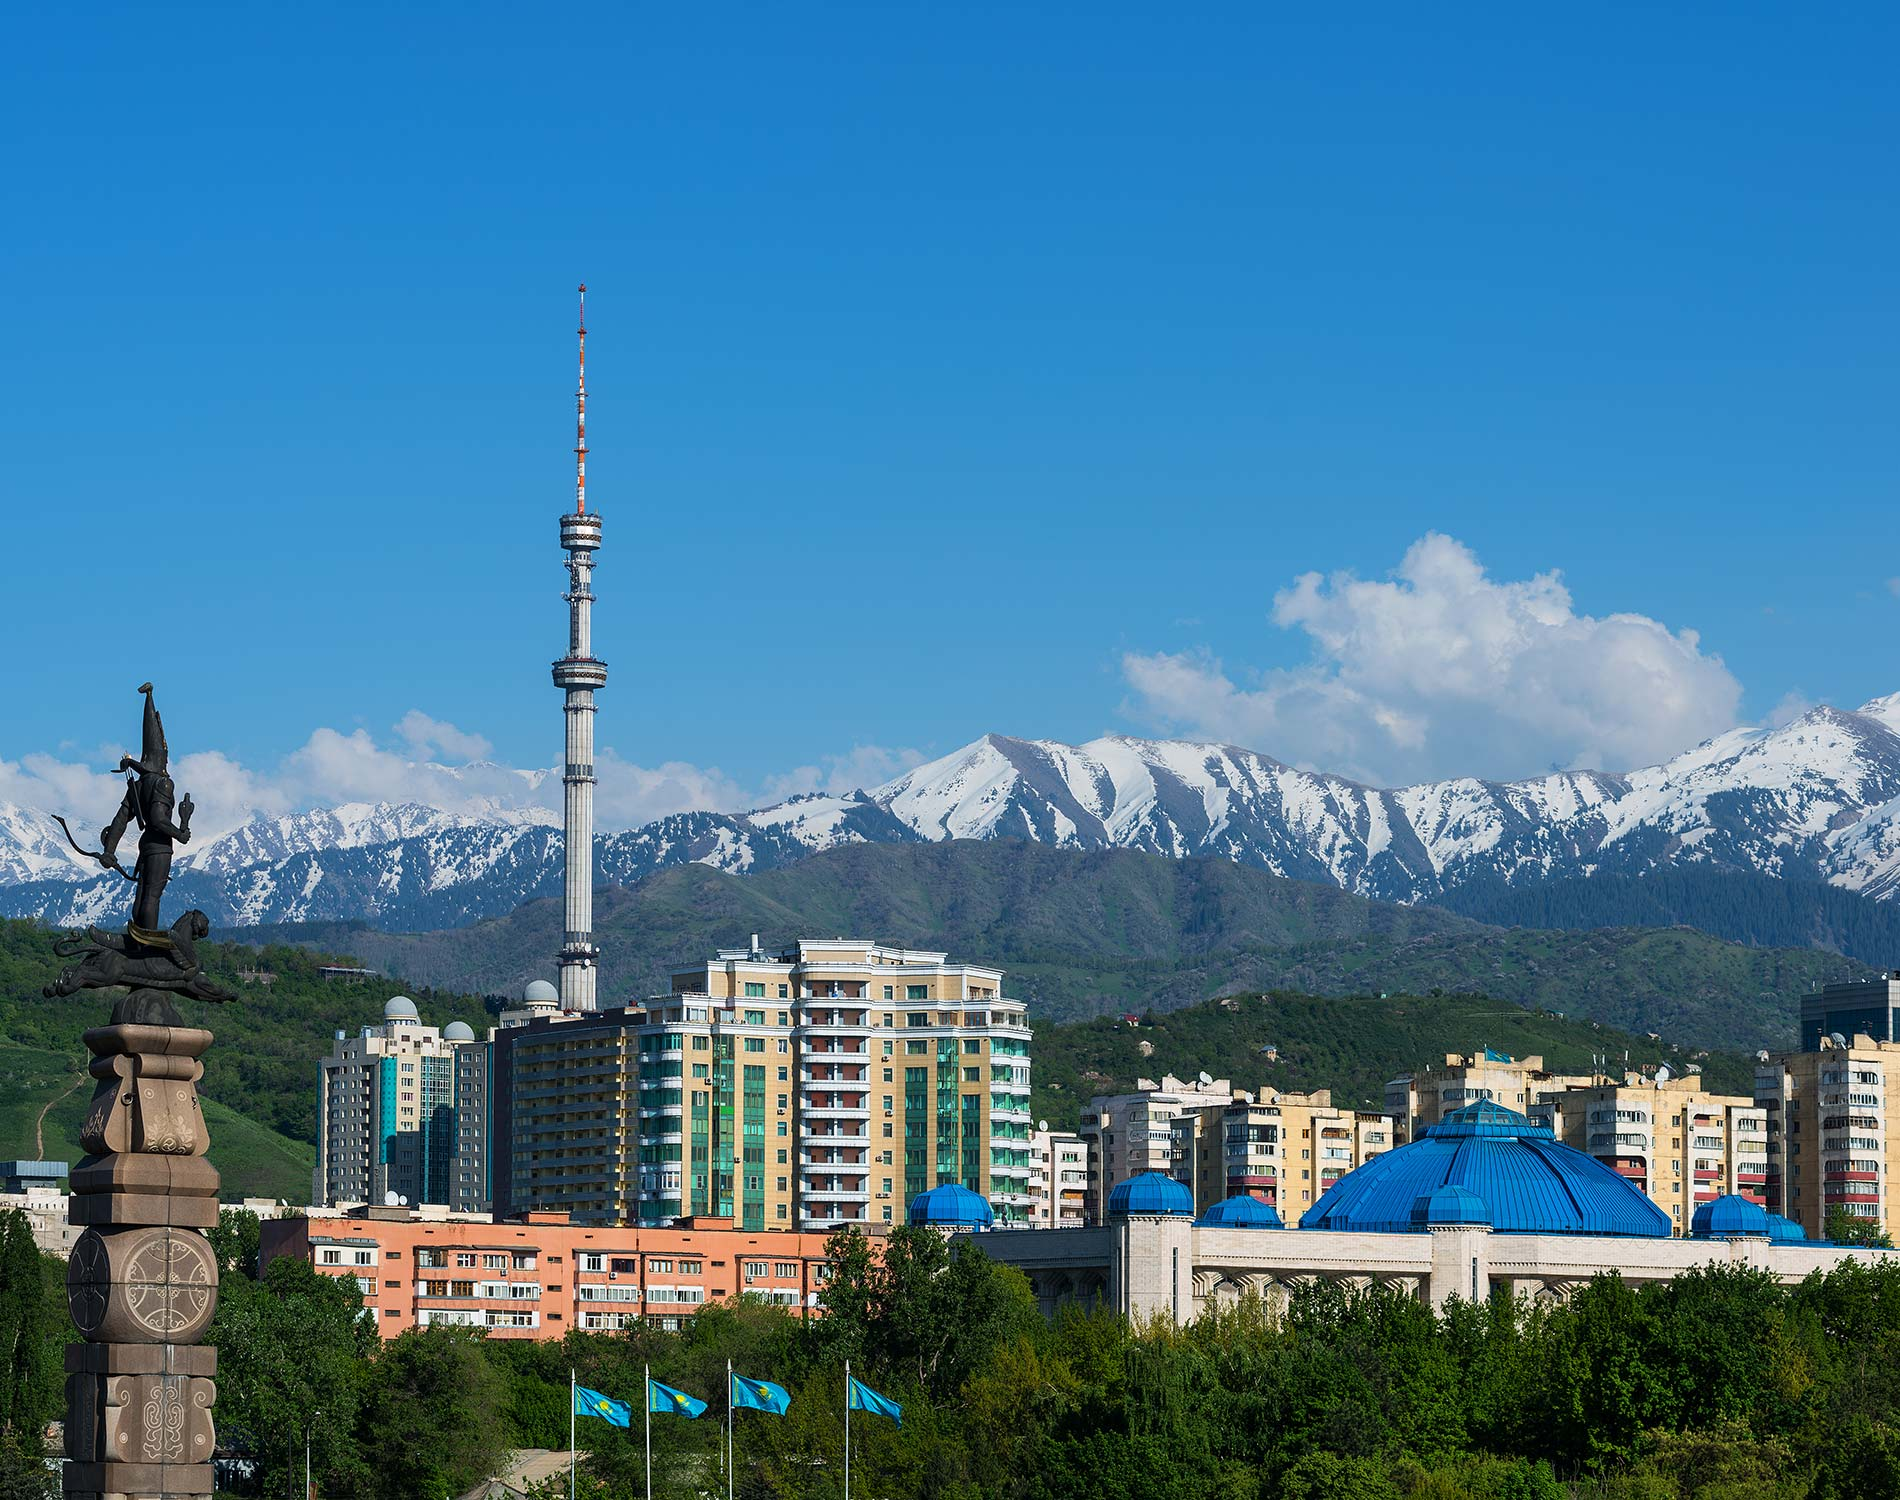 /~/media/images/website/background%20images/offices/almaty/almaty_web.jpg